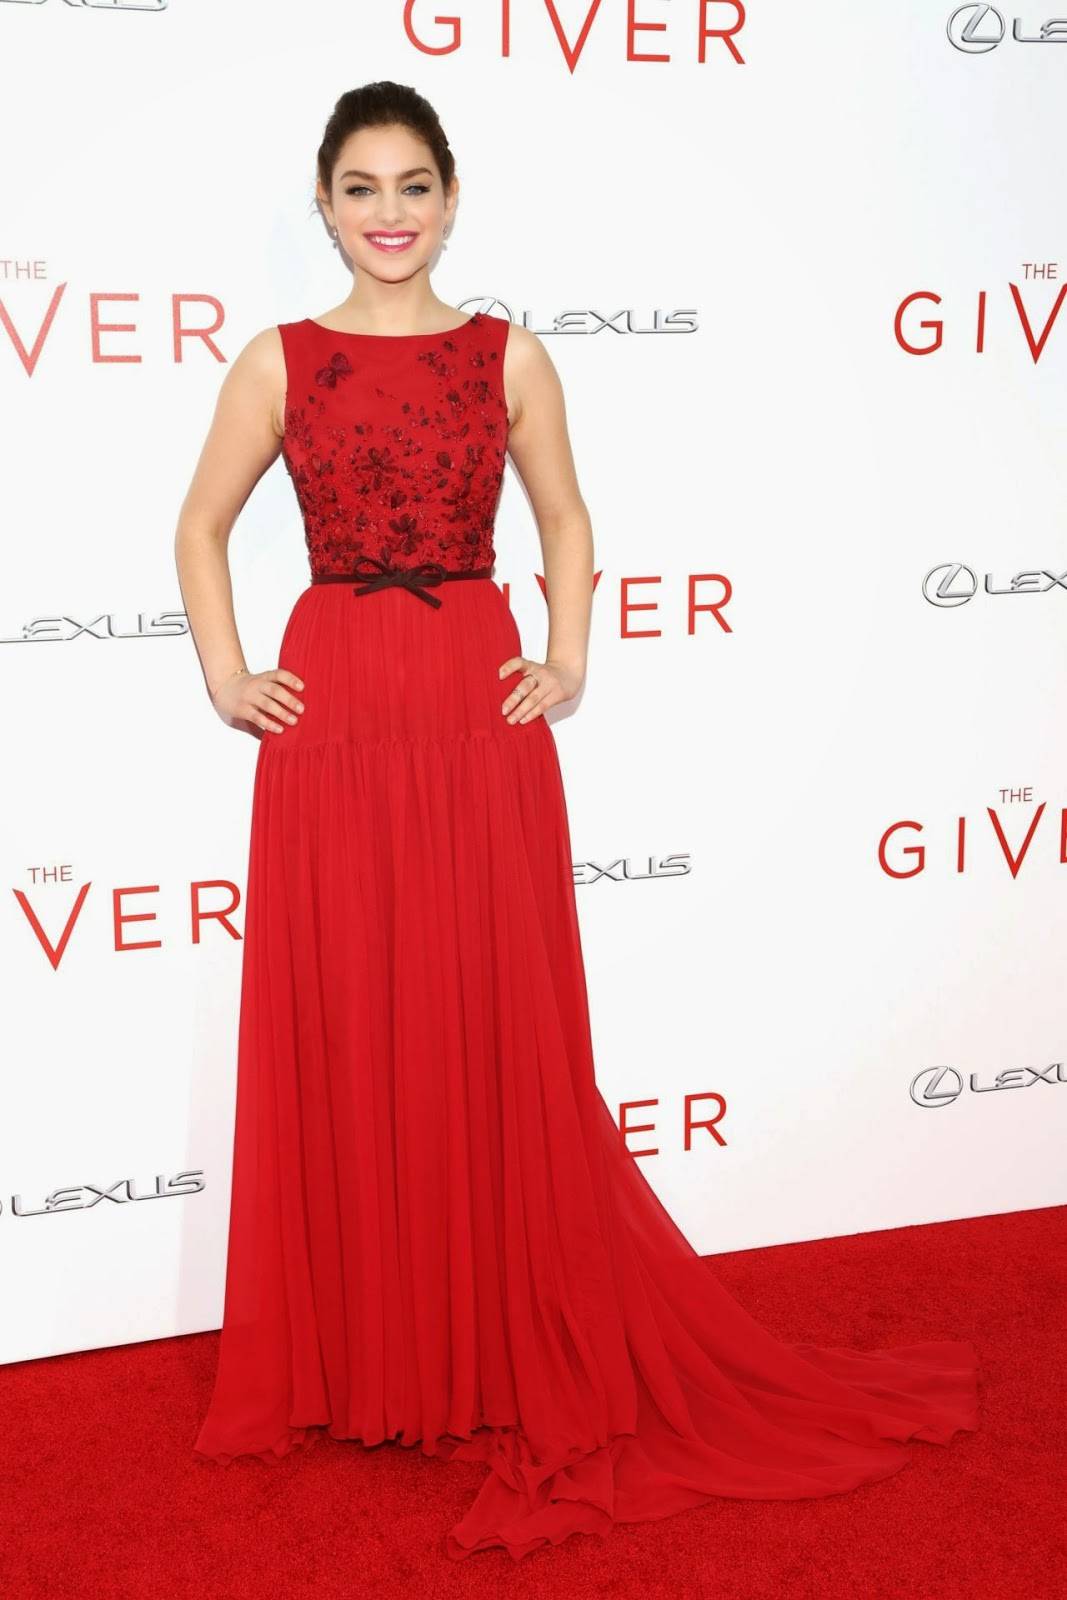 Odeya Rush is gorgeous in a red Georges Hobeika Couture dress at 'The Giver' NYC premiere